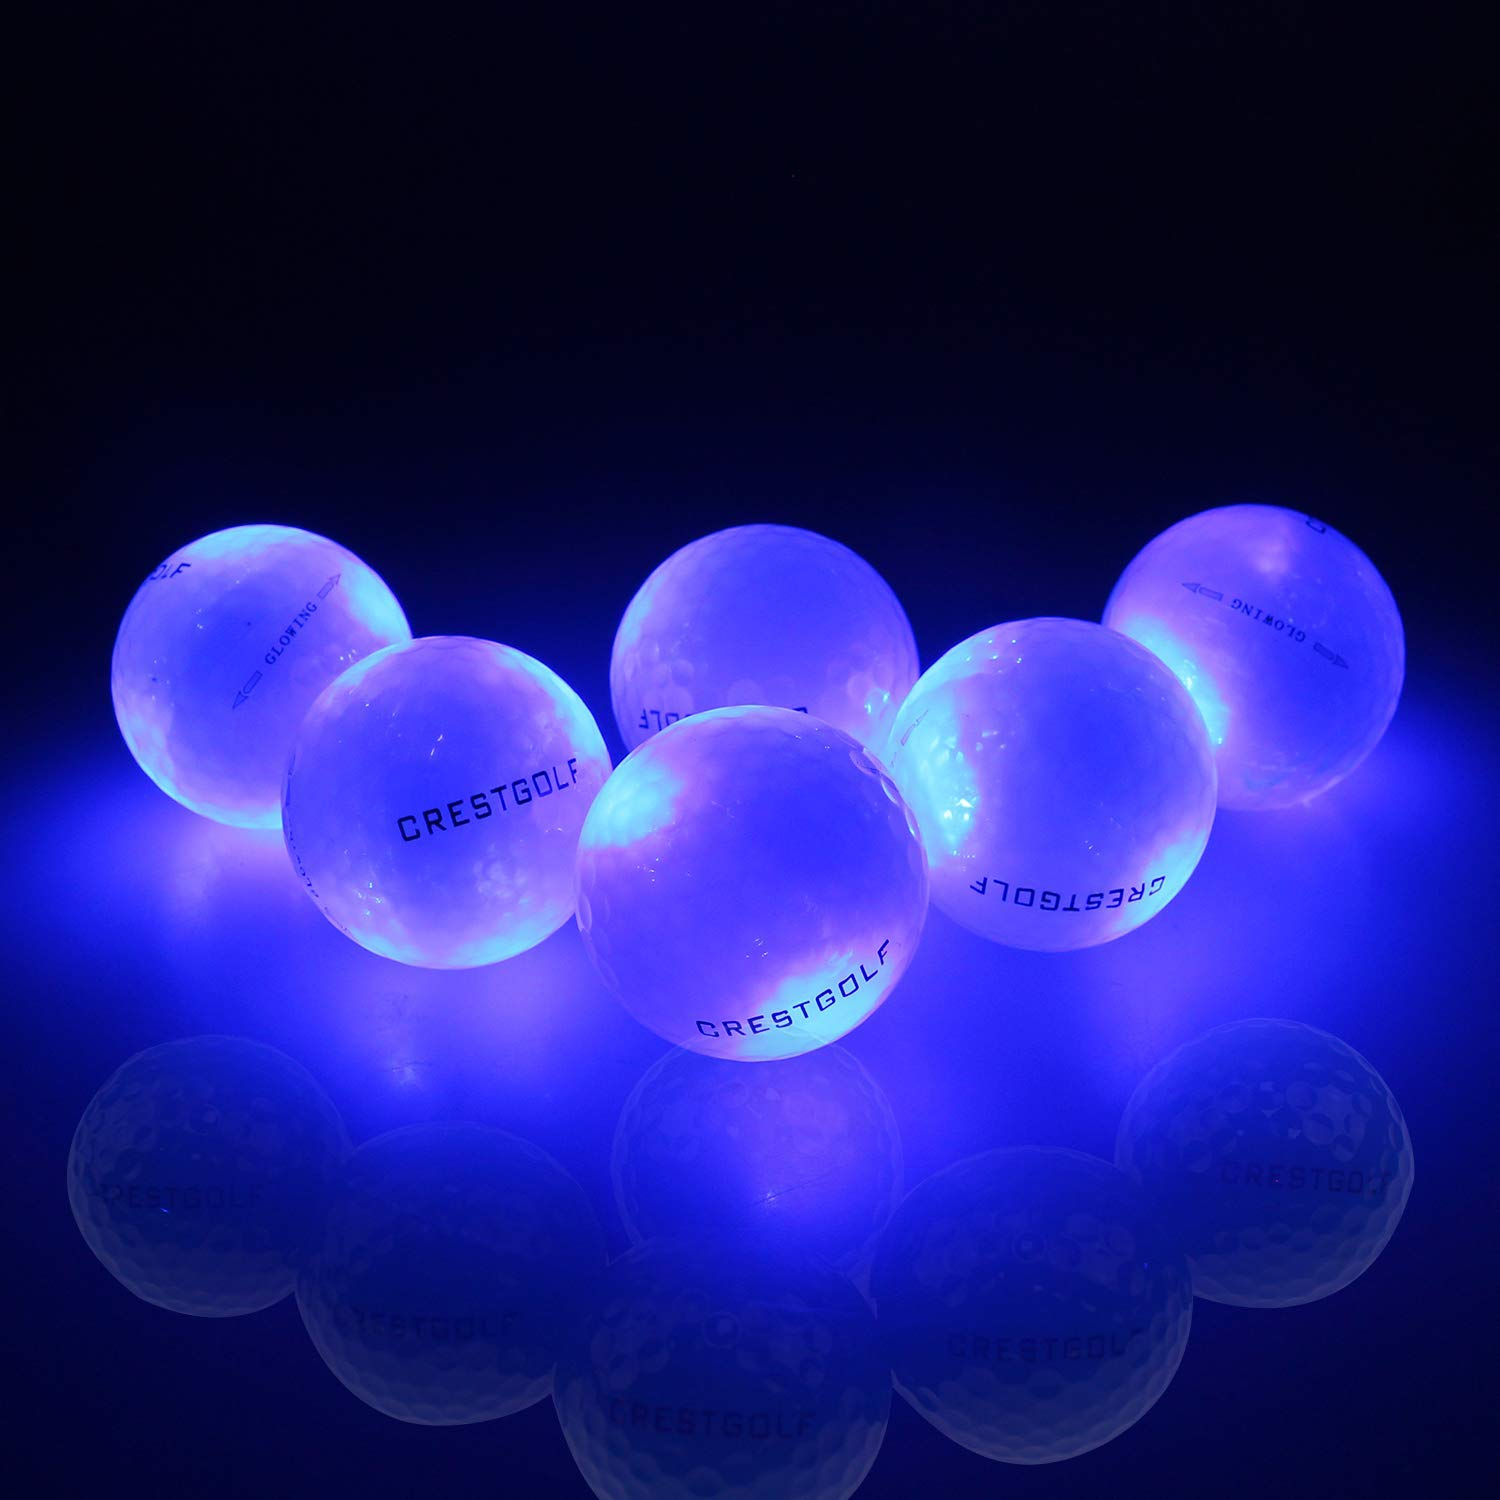 6 Pack Of Flashing Glowing Golf Balls By Crestgolf Review